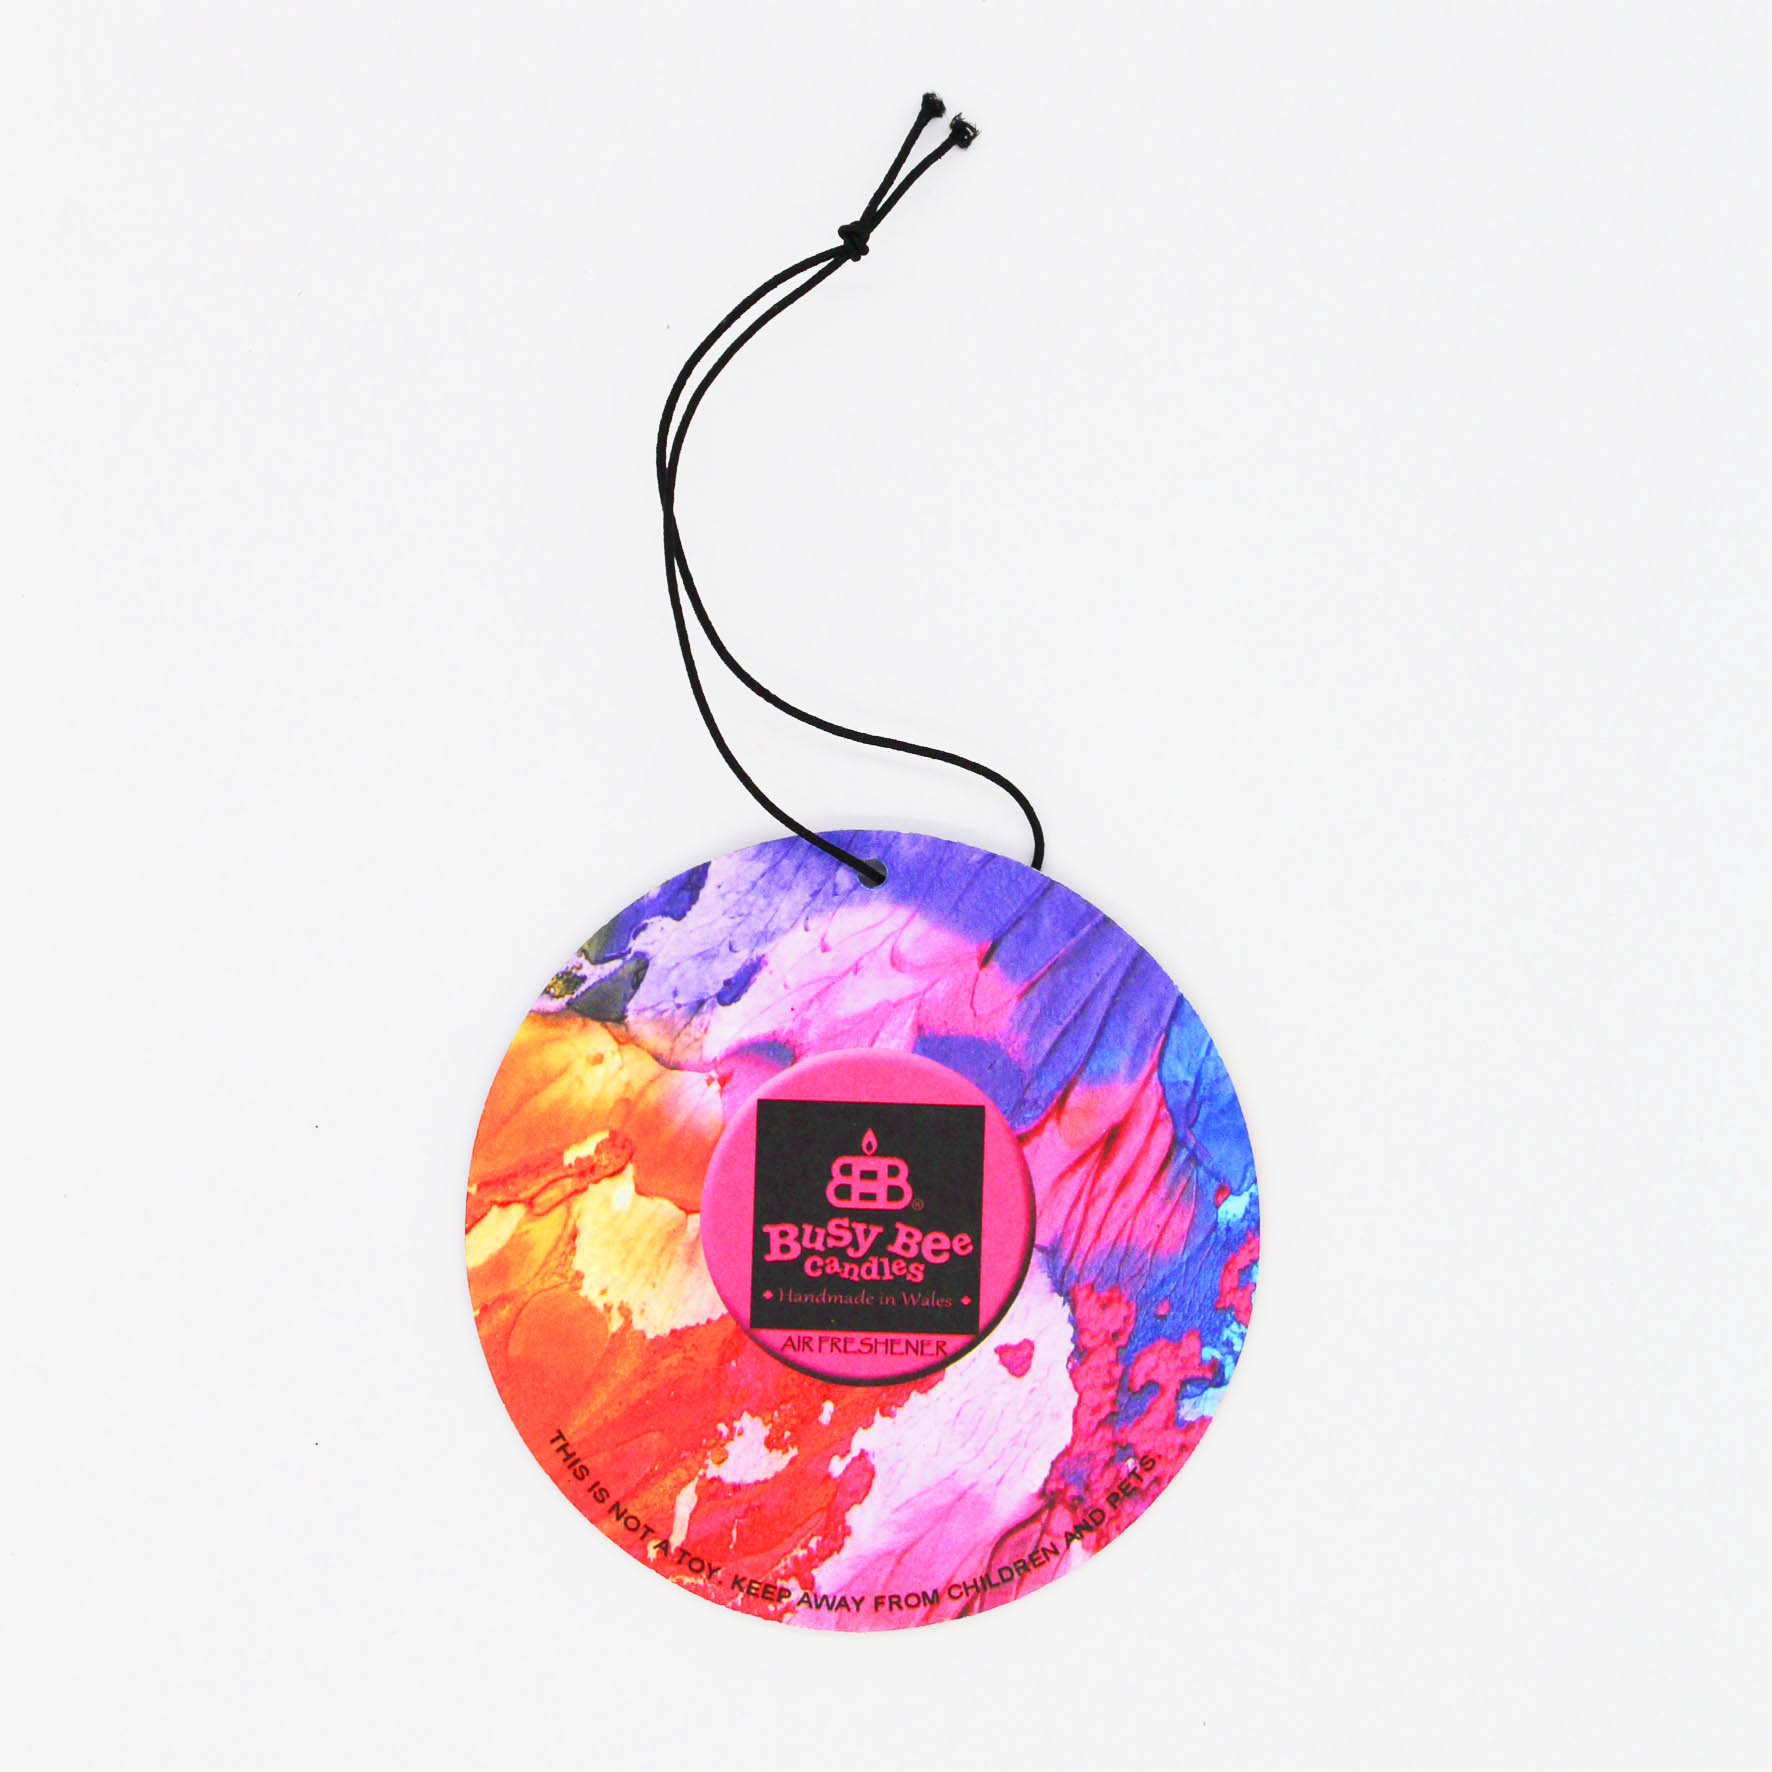 Lush Cherry Hanging Air Freshener